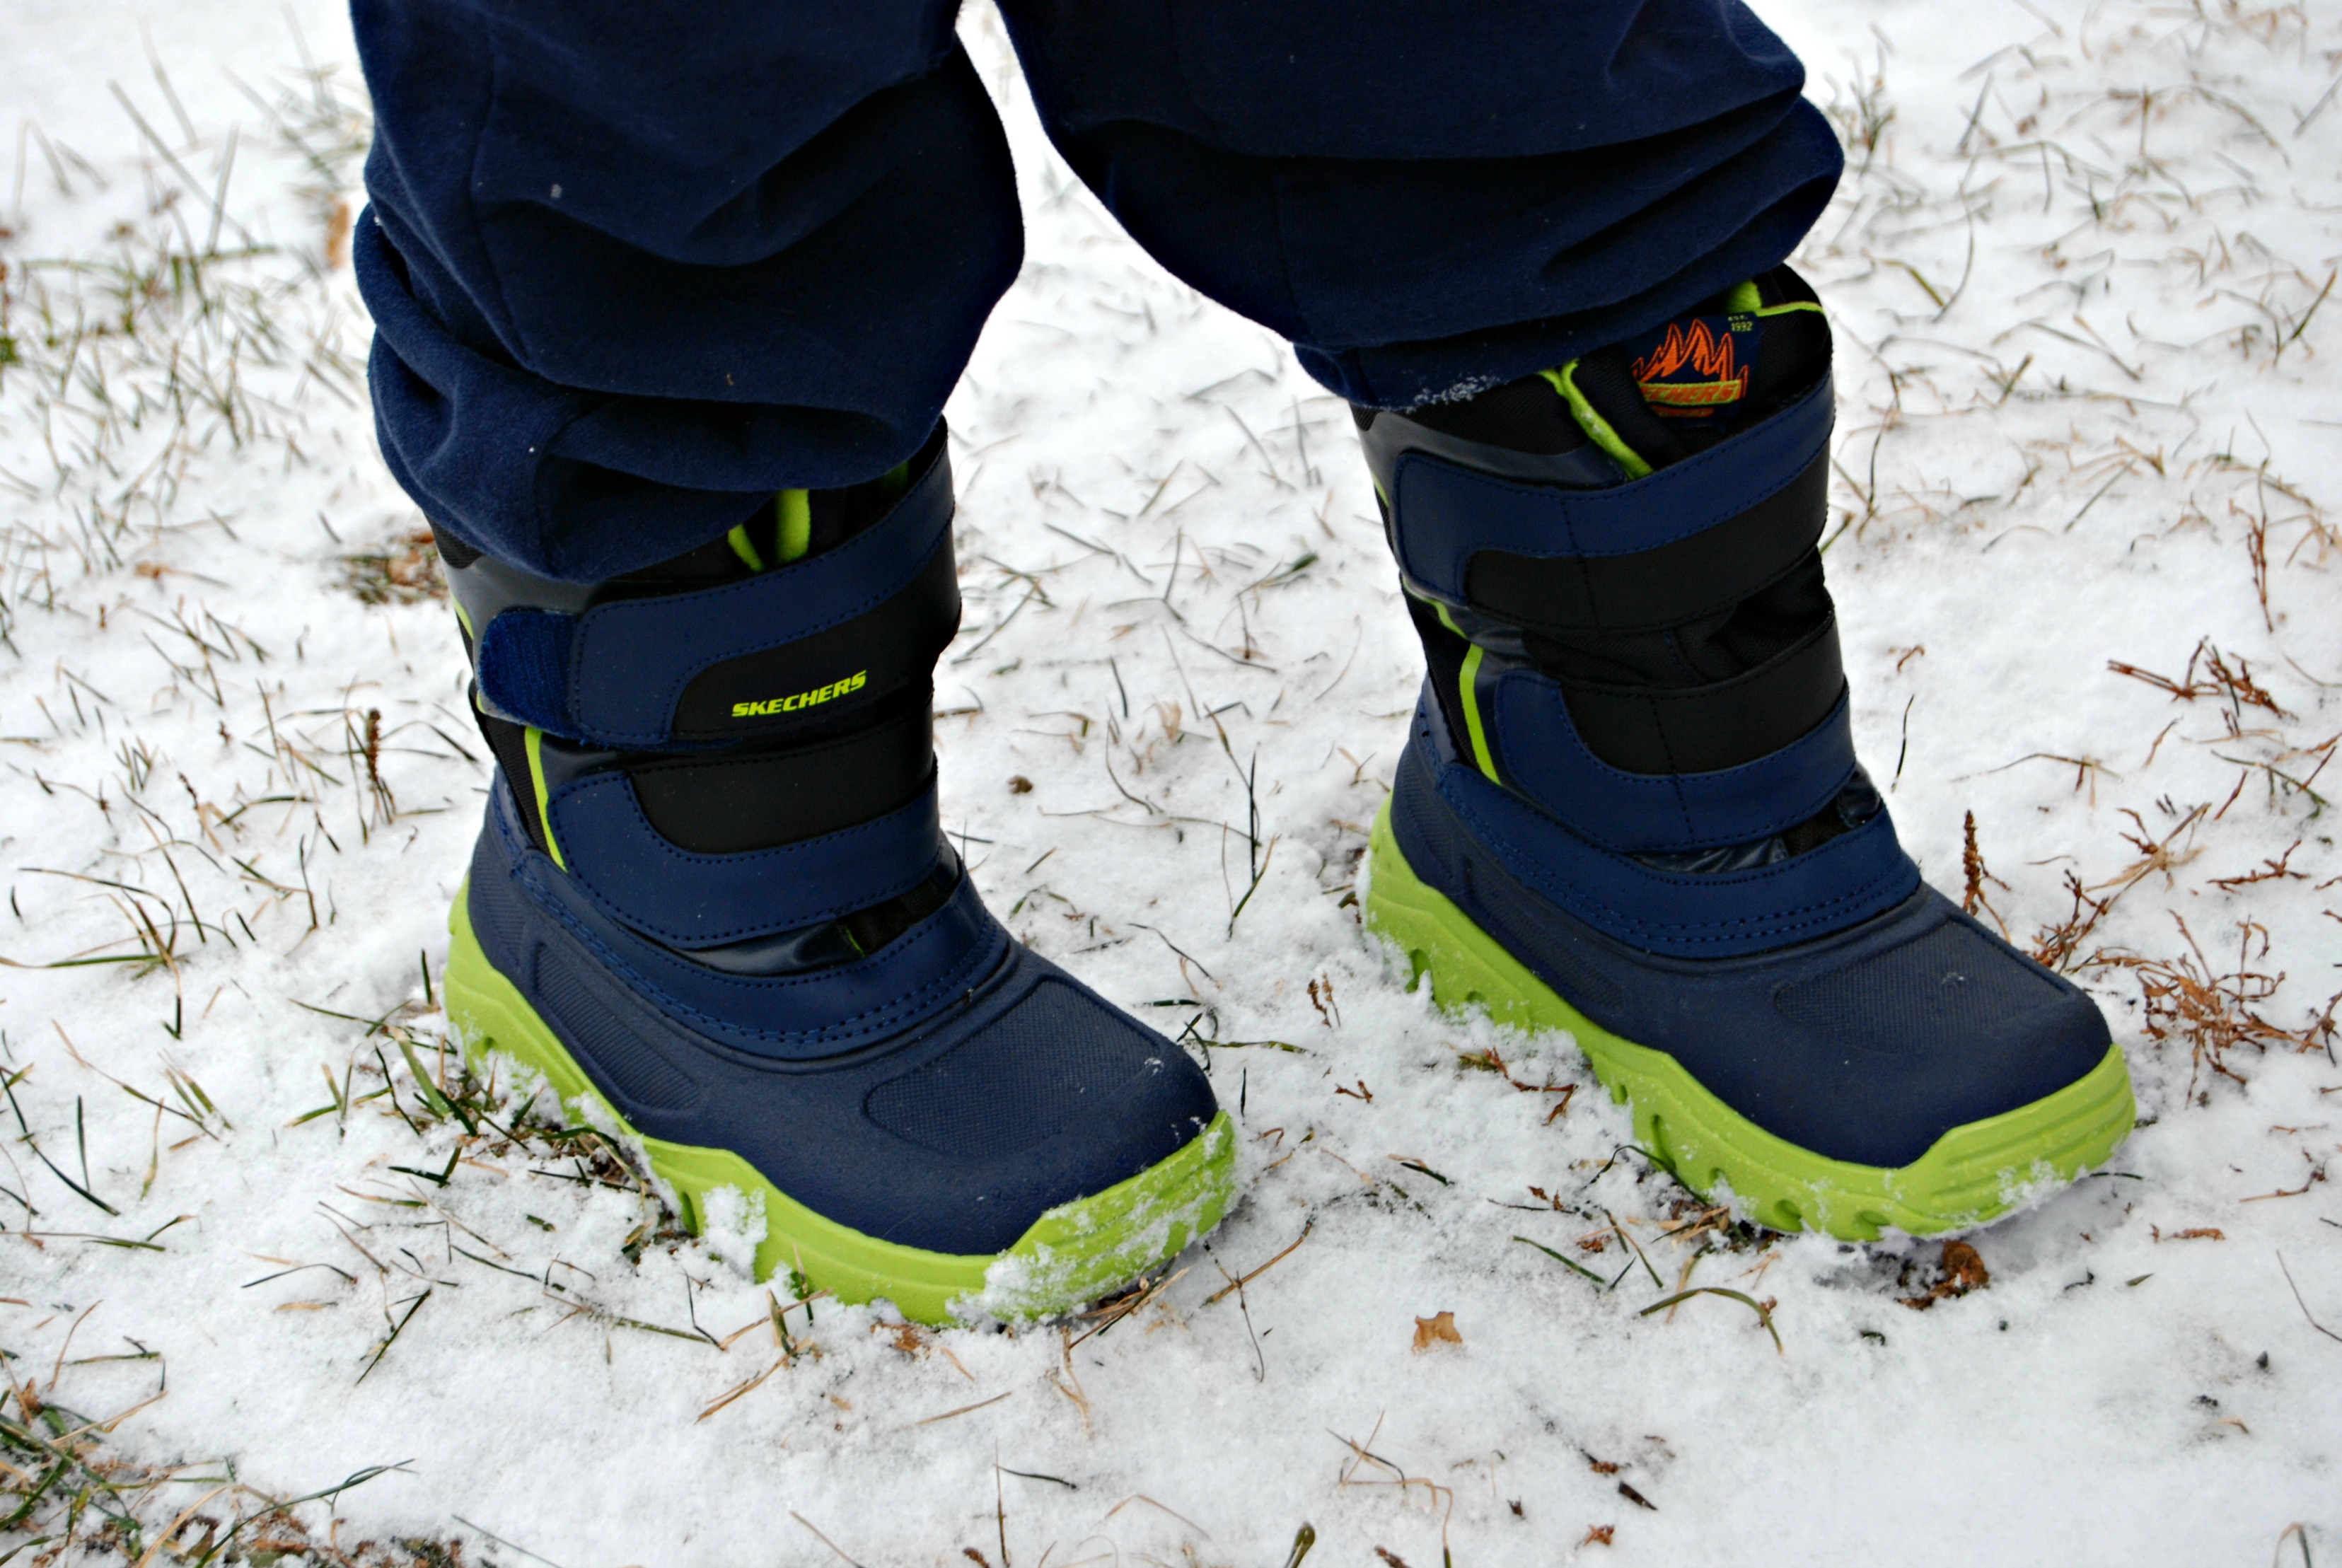 SKECHERS Kids Boots Naturally Cracked